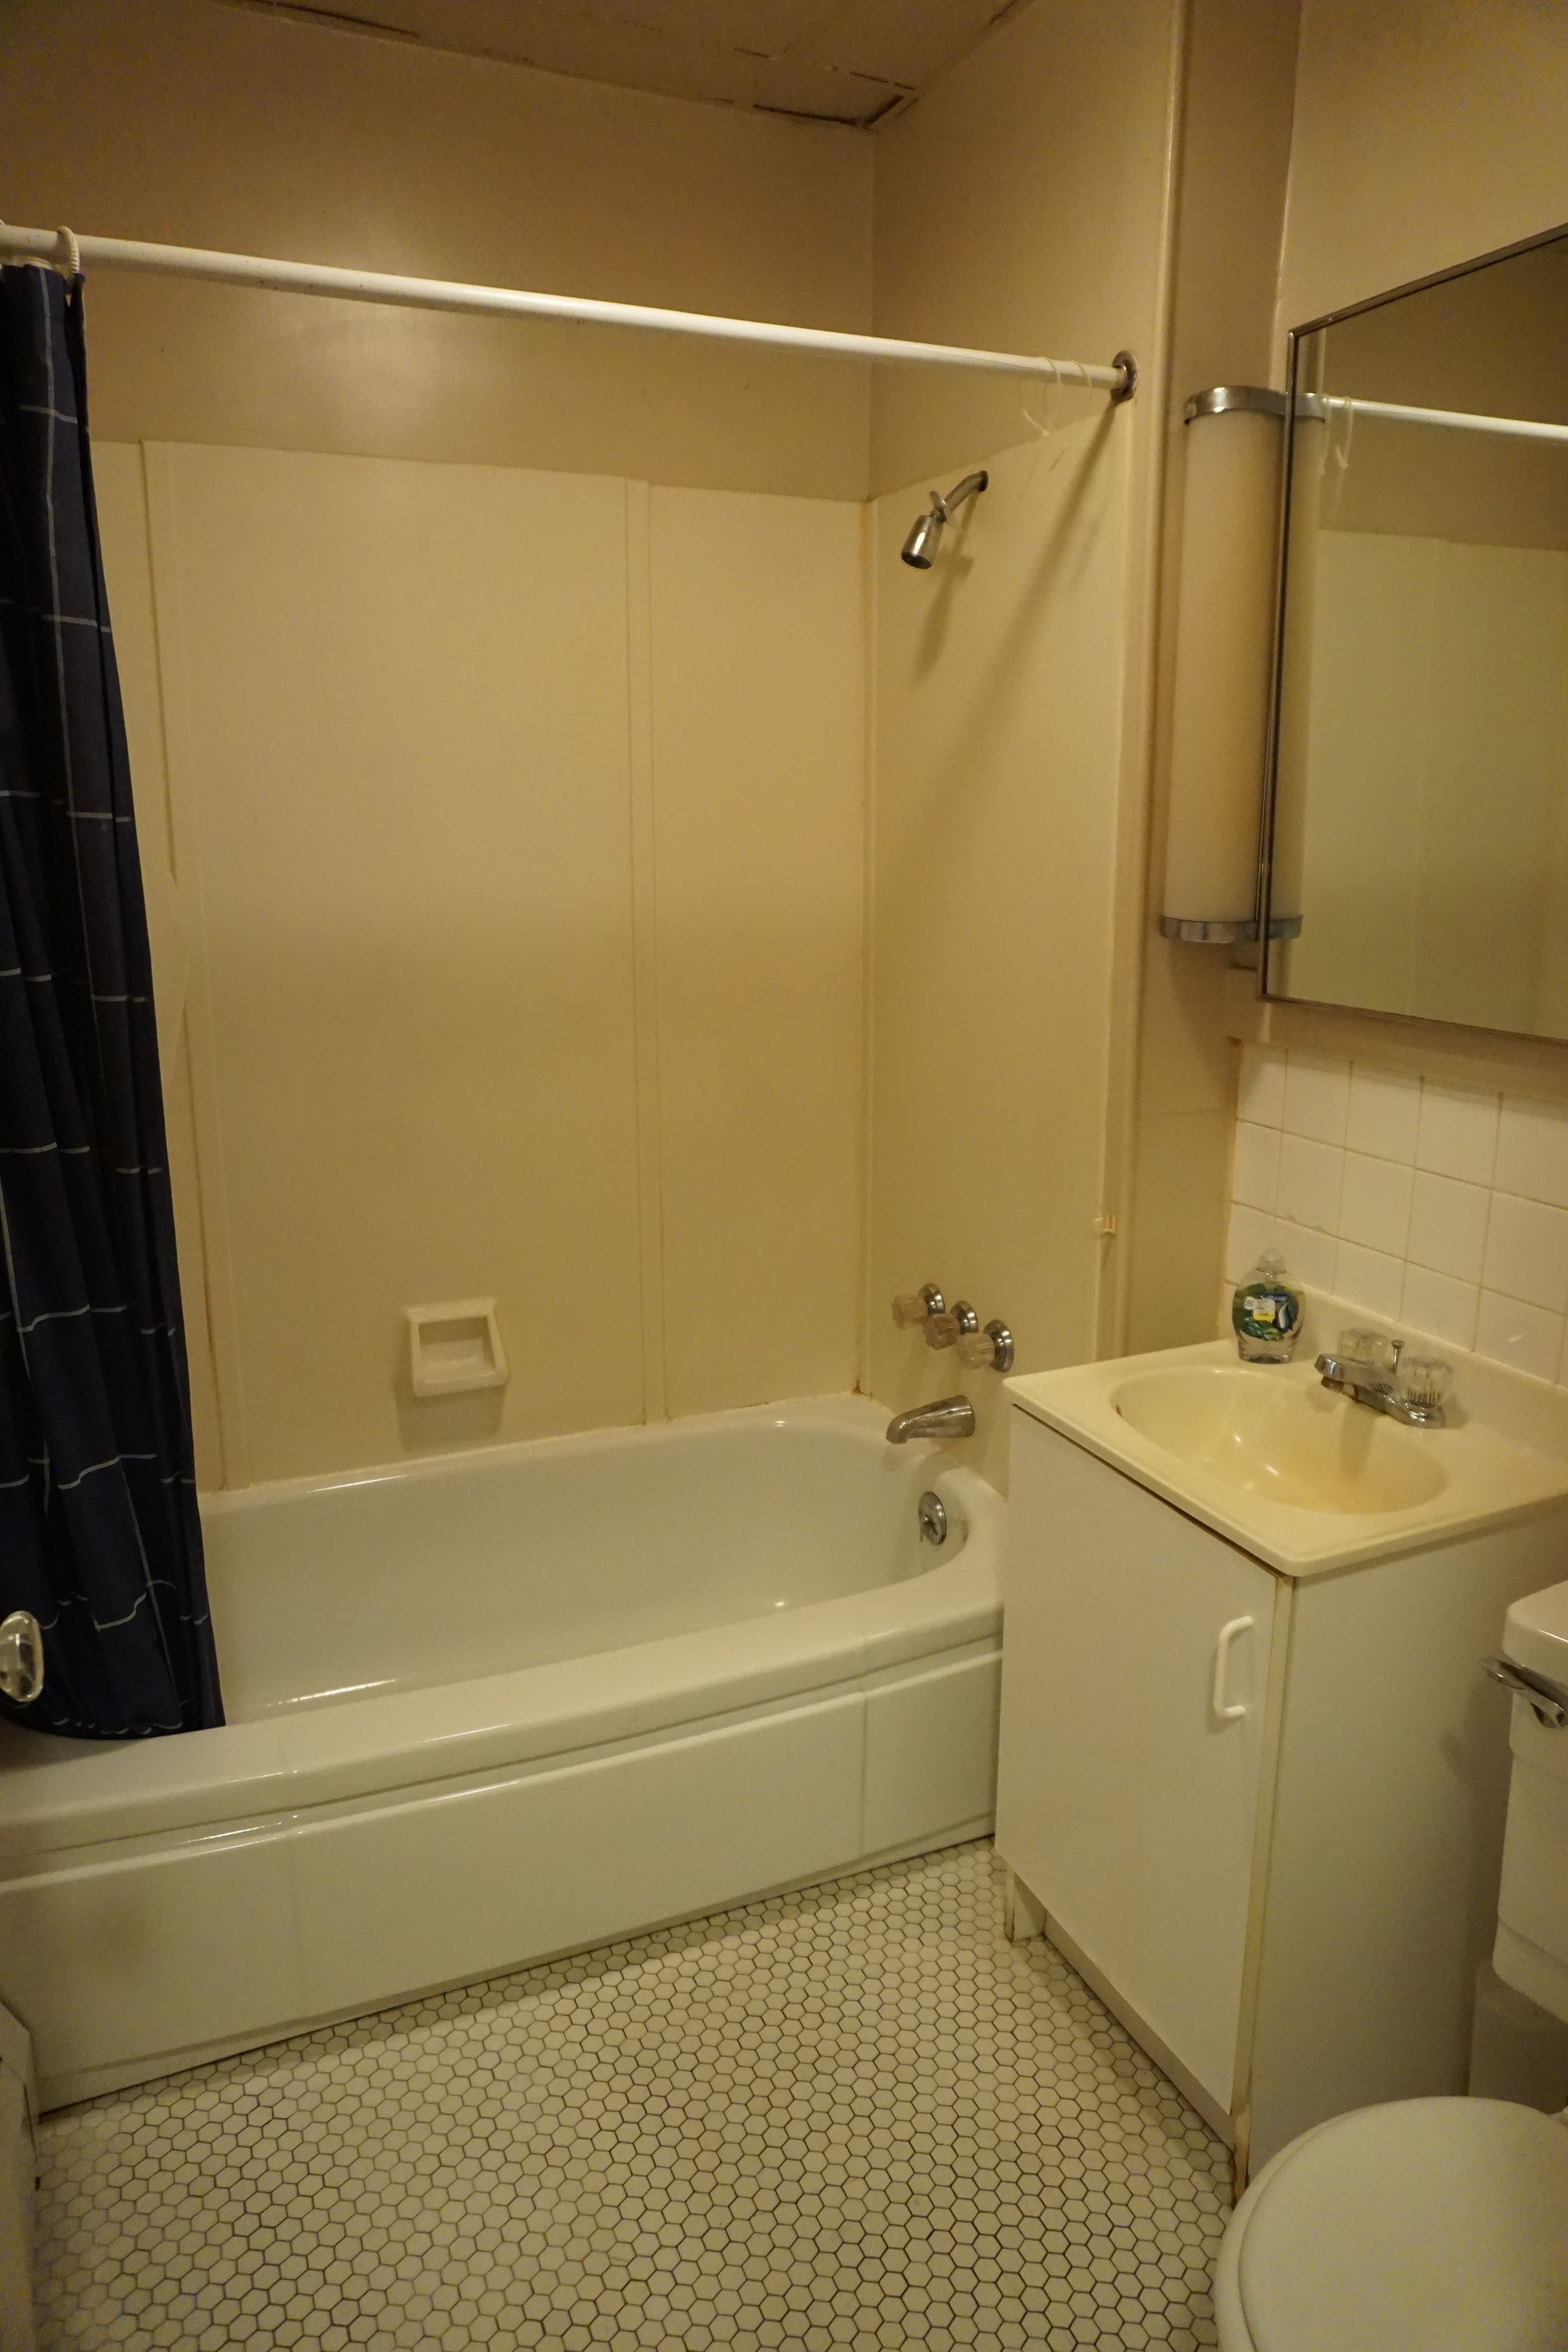 Pristine bathroom after phase 2 extreme cleaning